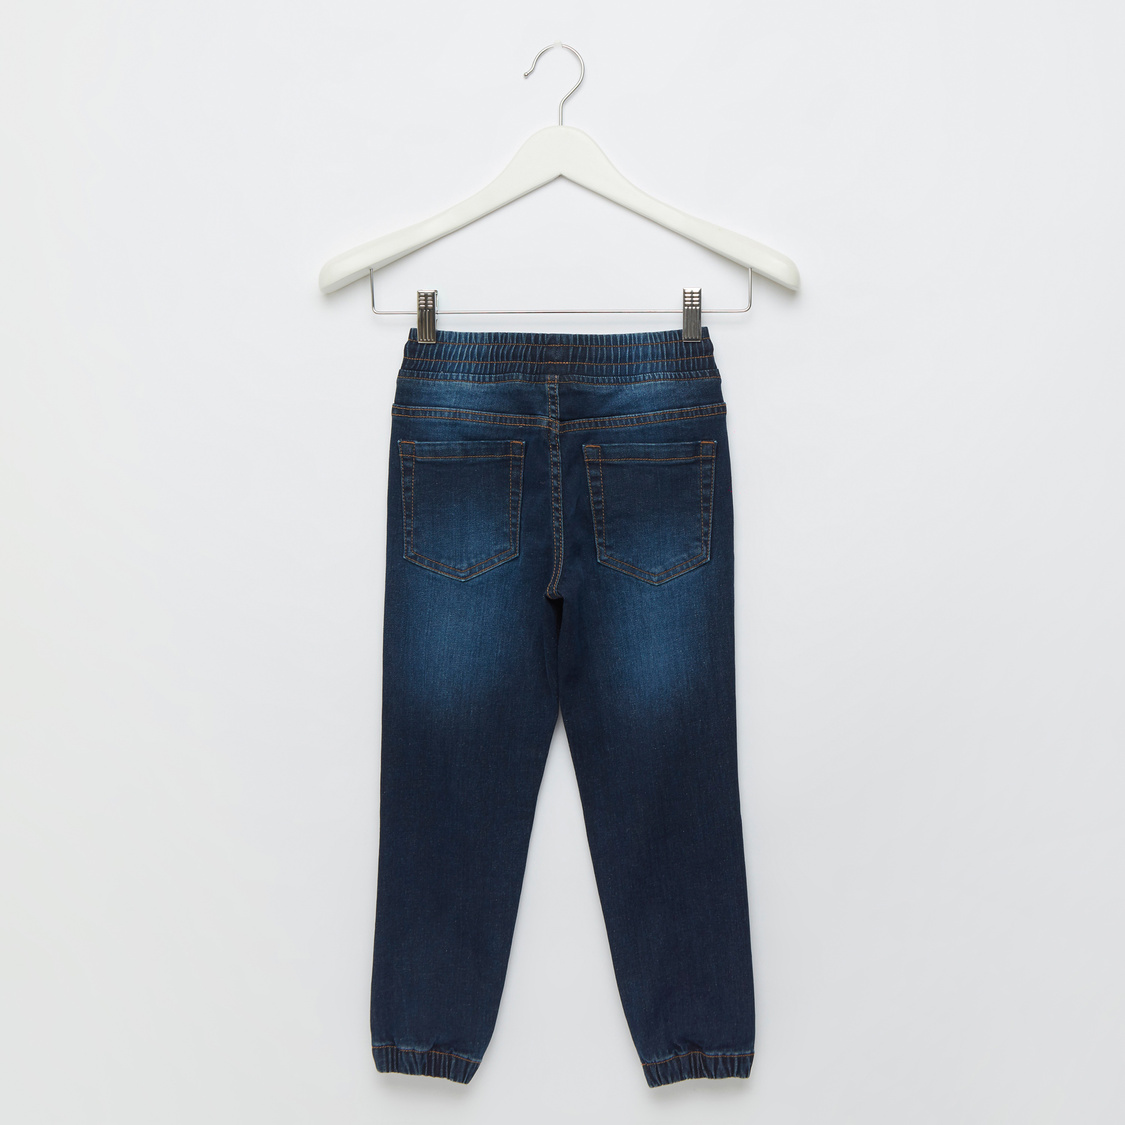 Textured Denim Jog Pants with Pocket Detail and Drawstring Closure